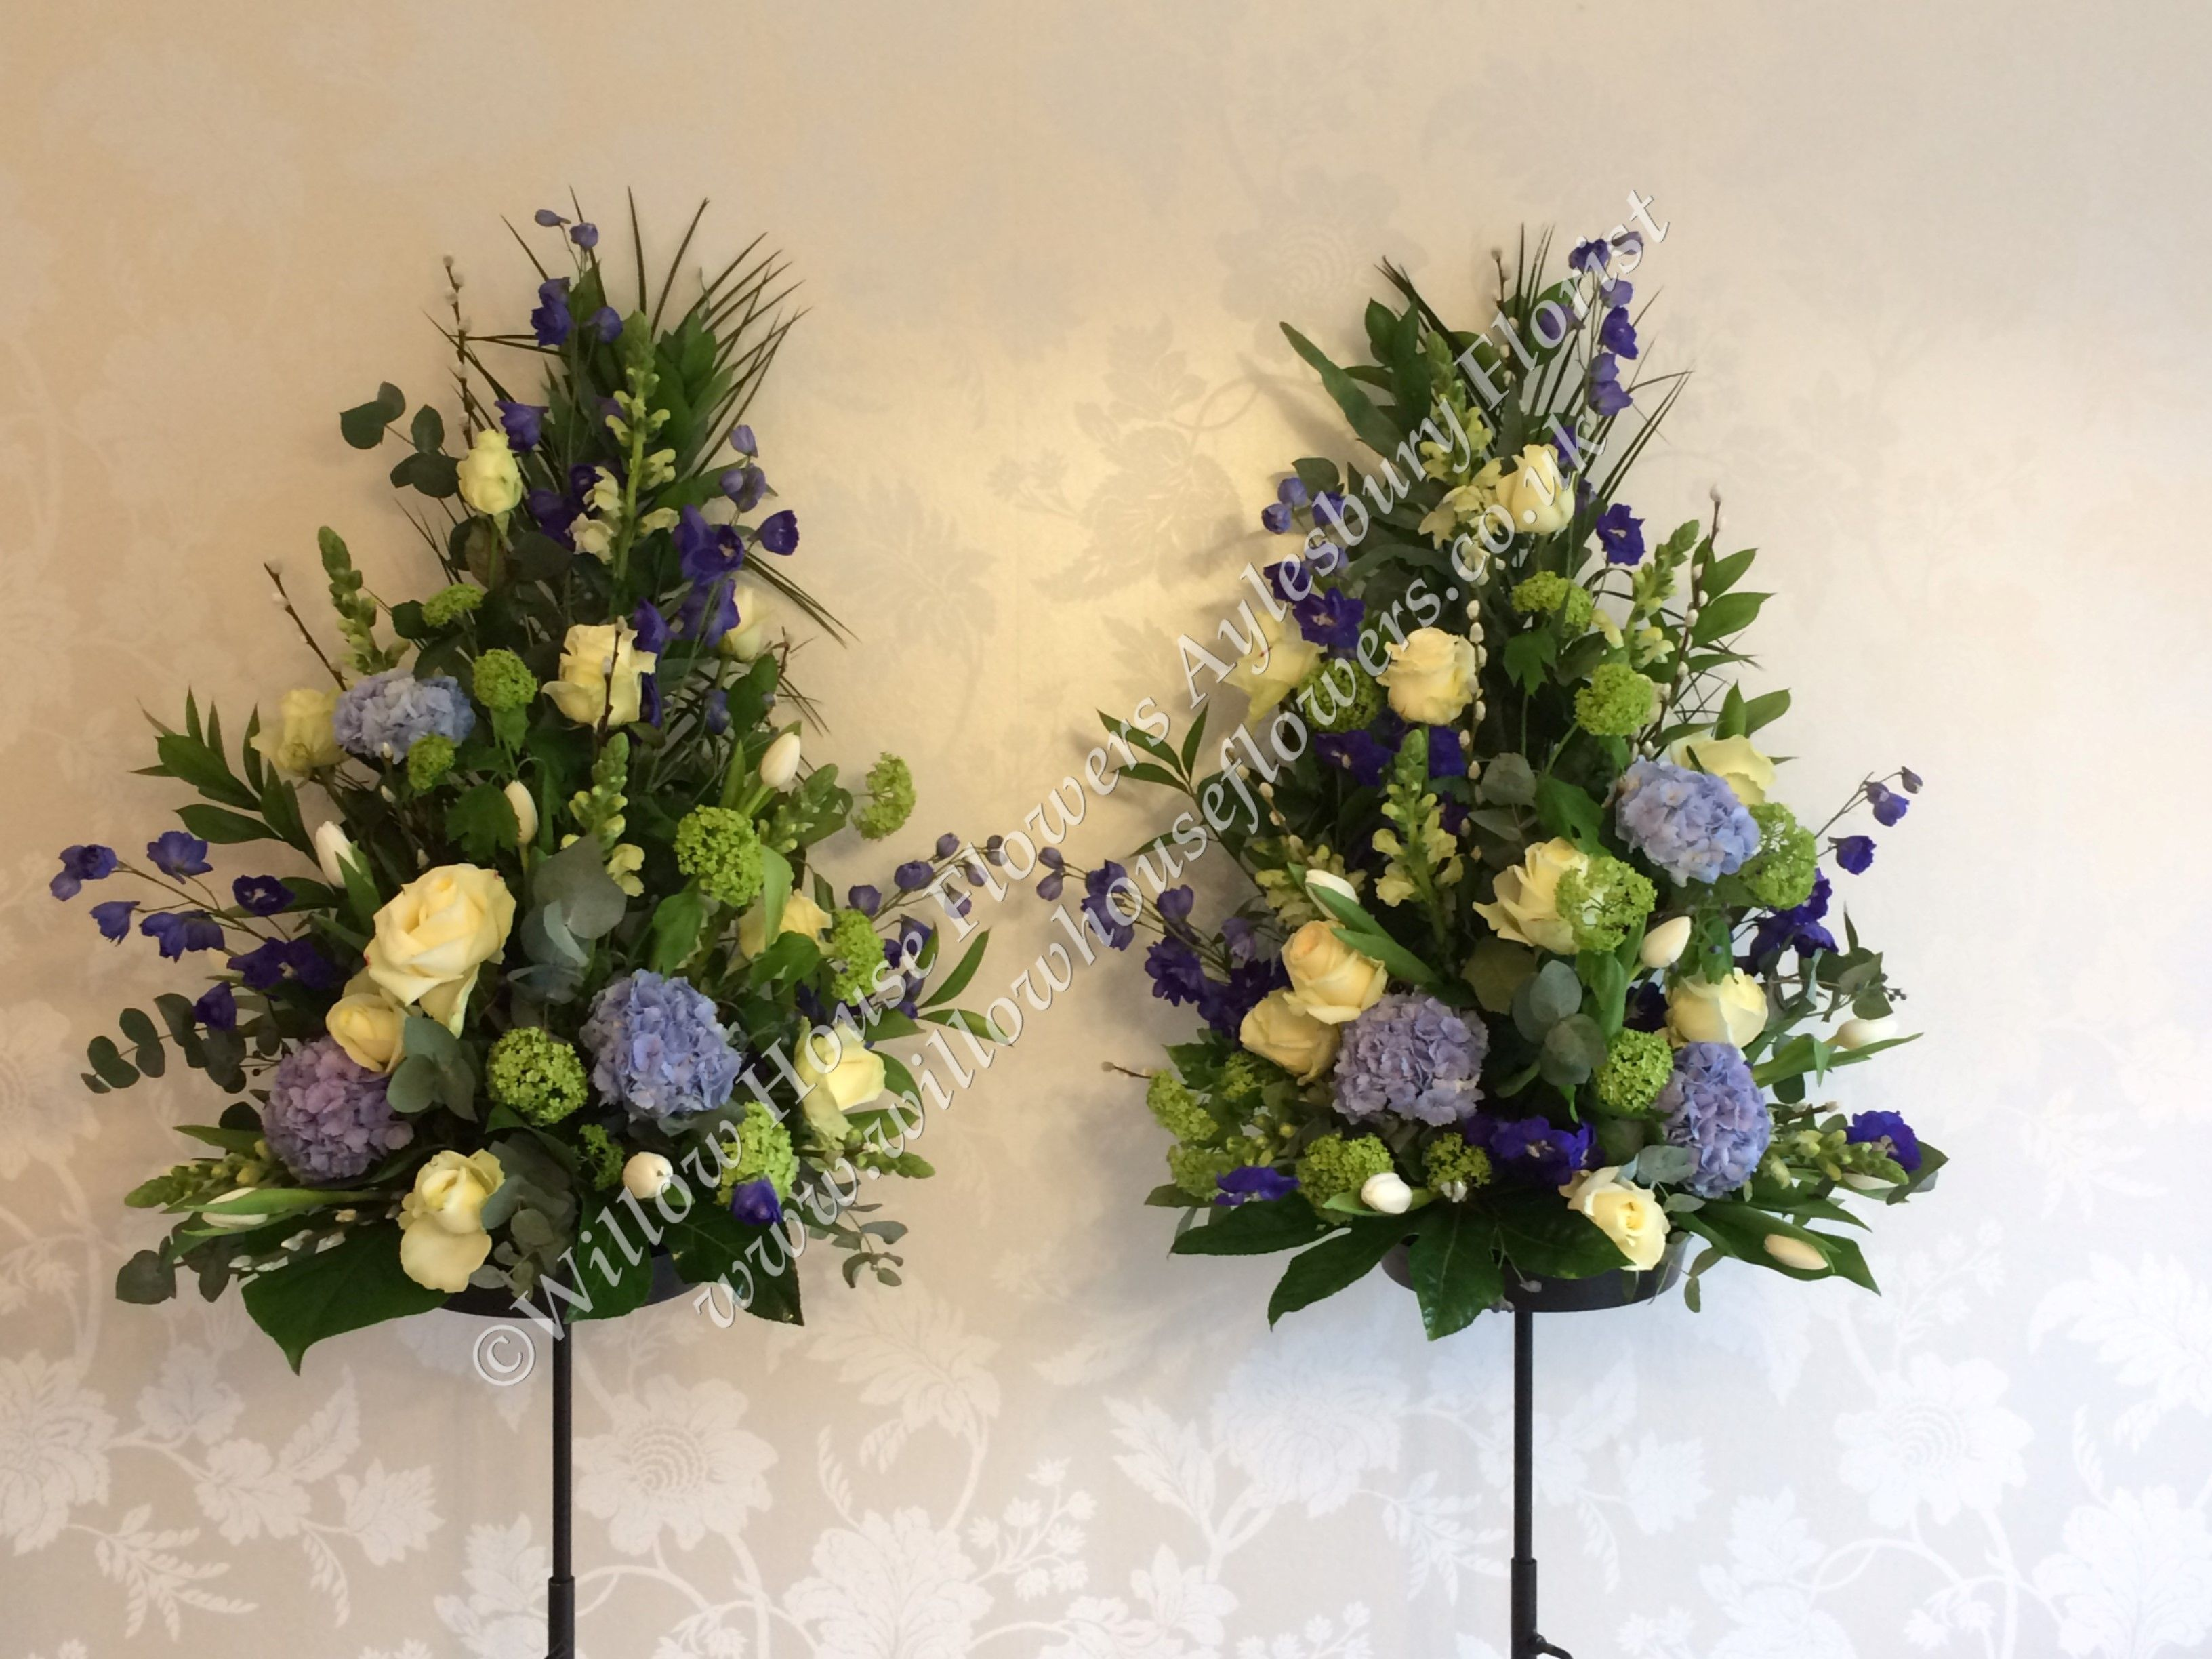 Fresh flower floral arrangement churchregistry office pedestal willow house flowers aylesbury florist free same day delivery in aylesbury bucks local on line florist for next day local delivery flowers bouquets izmirmasajfo Images